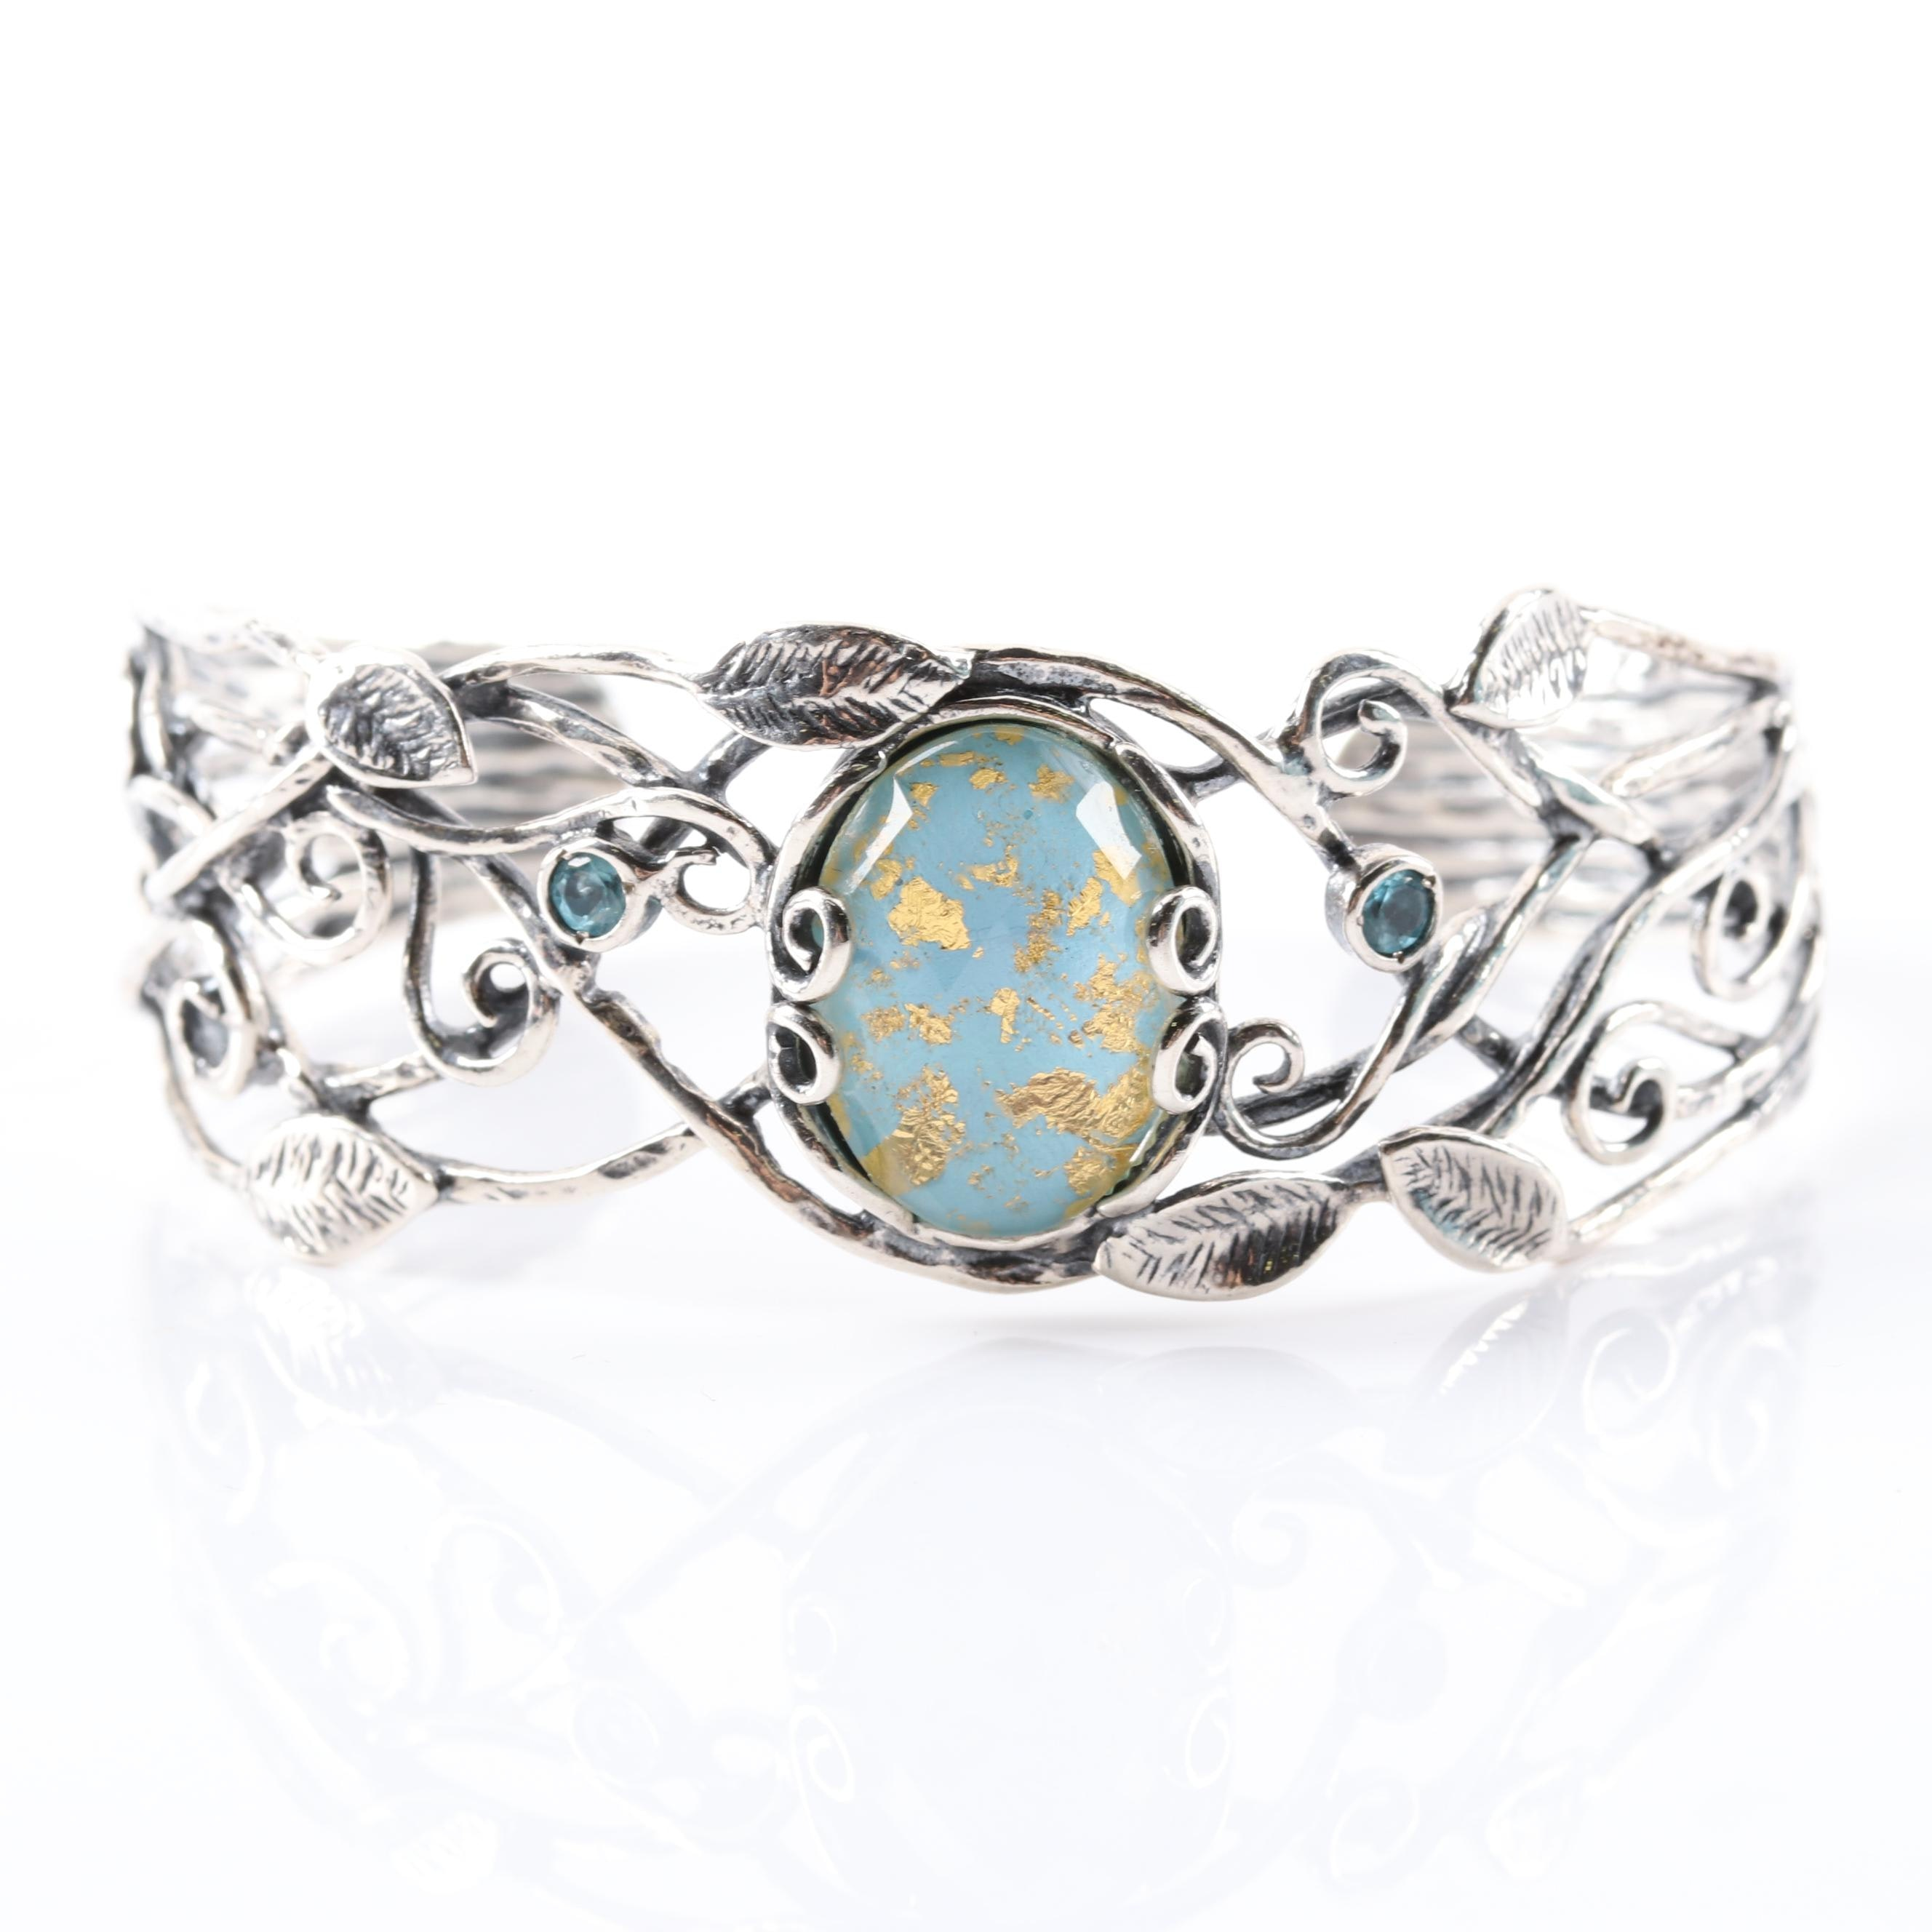 Sterling Silver Crystal Quartz Turquoise Doublet and Zircon Cuff Bracelet